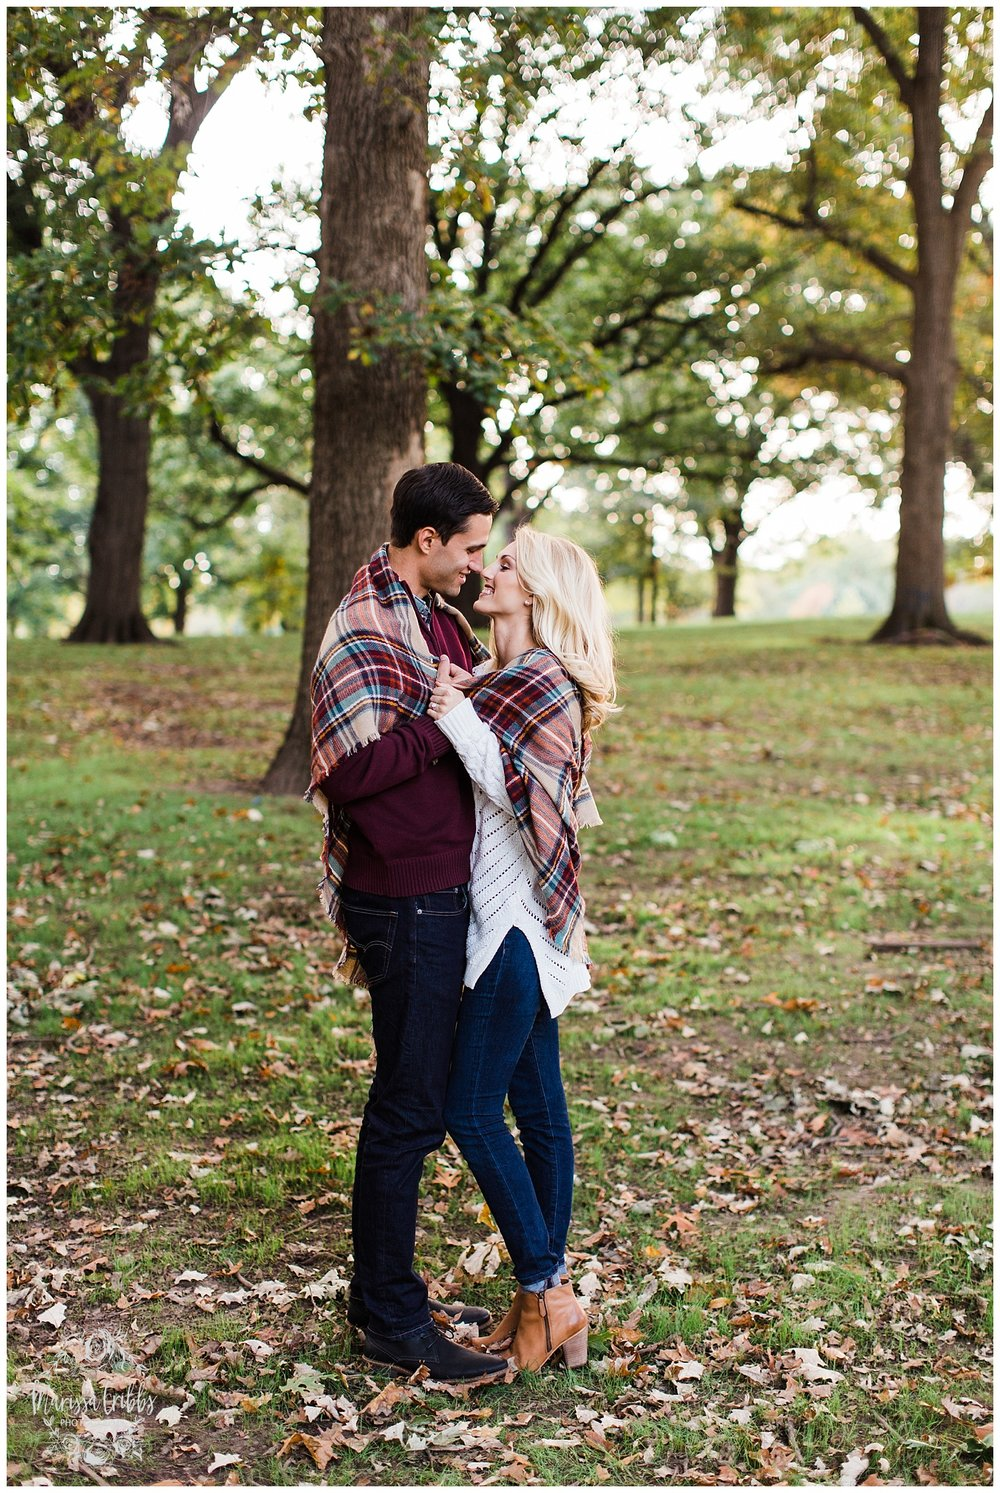 CLOE & GABE LIBERTY MEMORIAL ENGAGEMENT | MARISSA CRIBBS PHOTOGRAPHY | LOOSE PARK ENGAGEMENT_3459.jpg